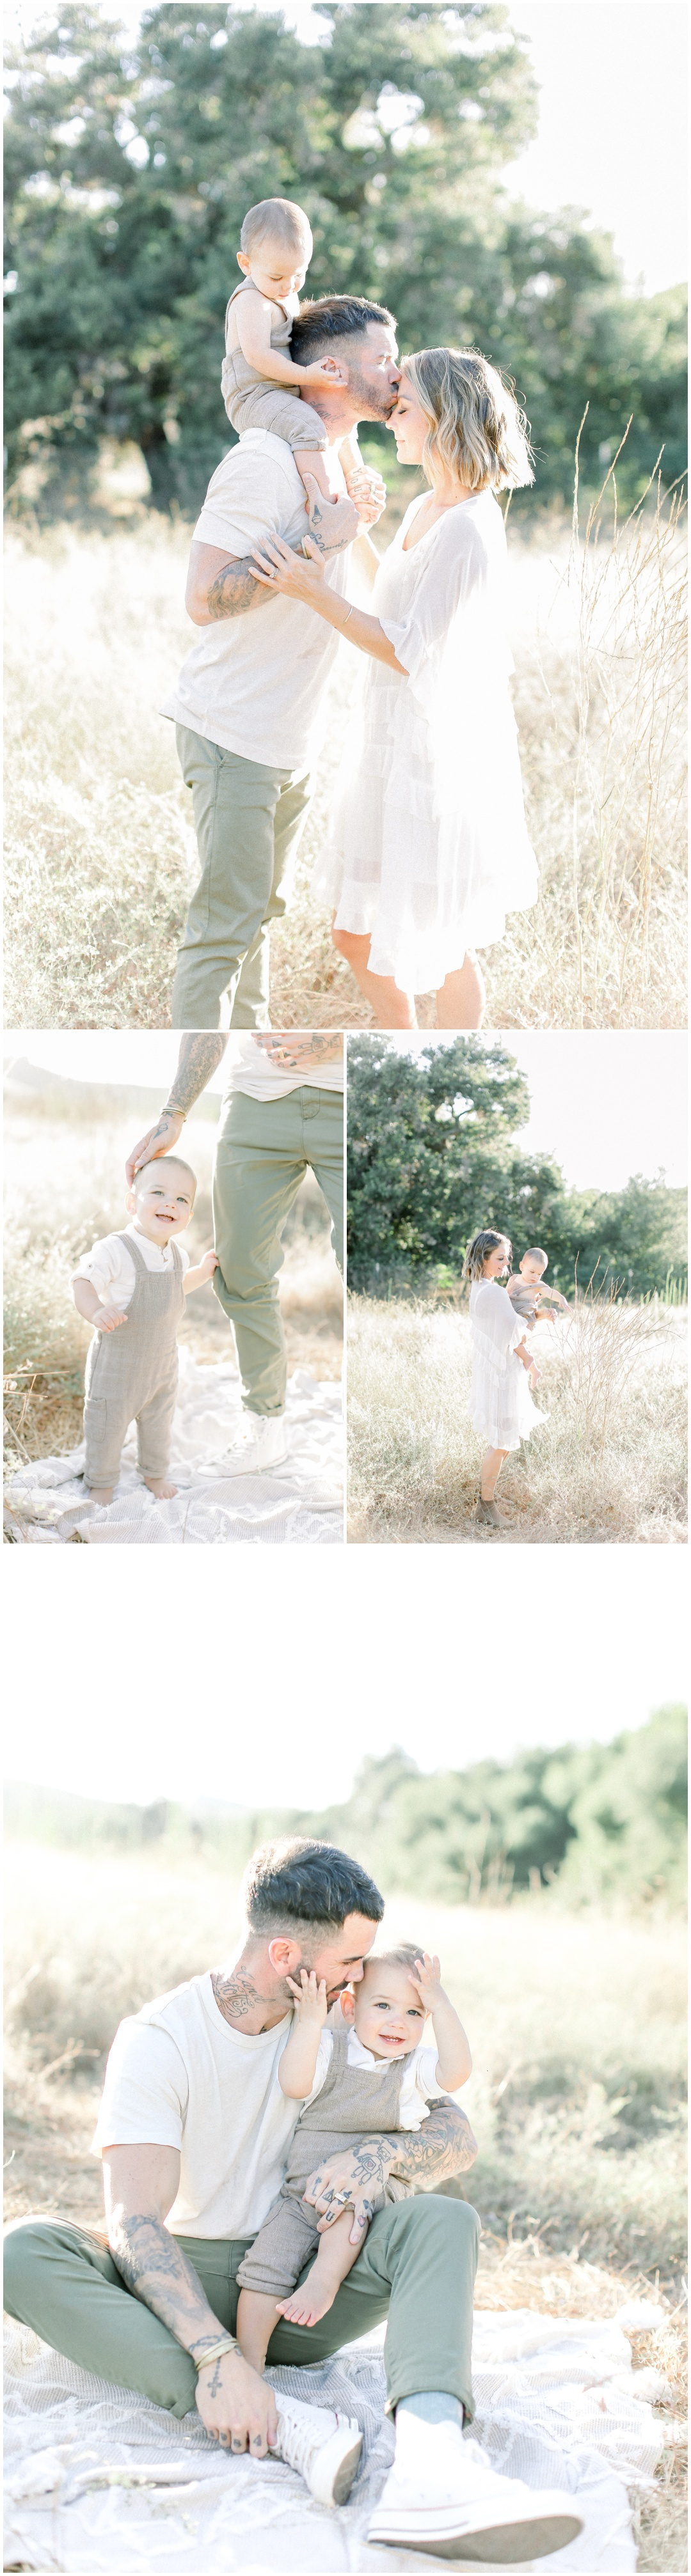 Newport_Beach_Family_Session_Orange_County_Family_Photographer_Thomas_Riley_Wilderness_Park_Carrie_Stotts_Sean_Stotts__4314.jpg